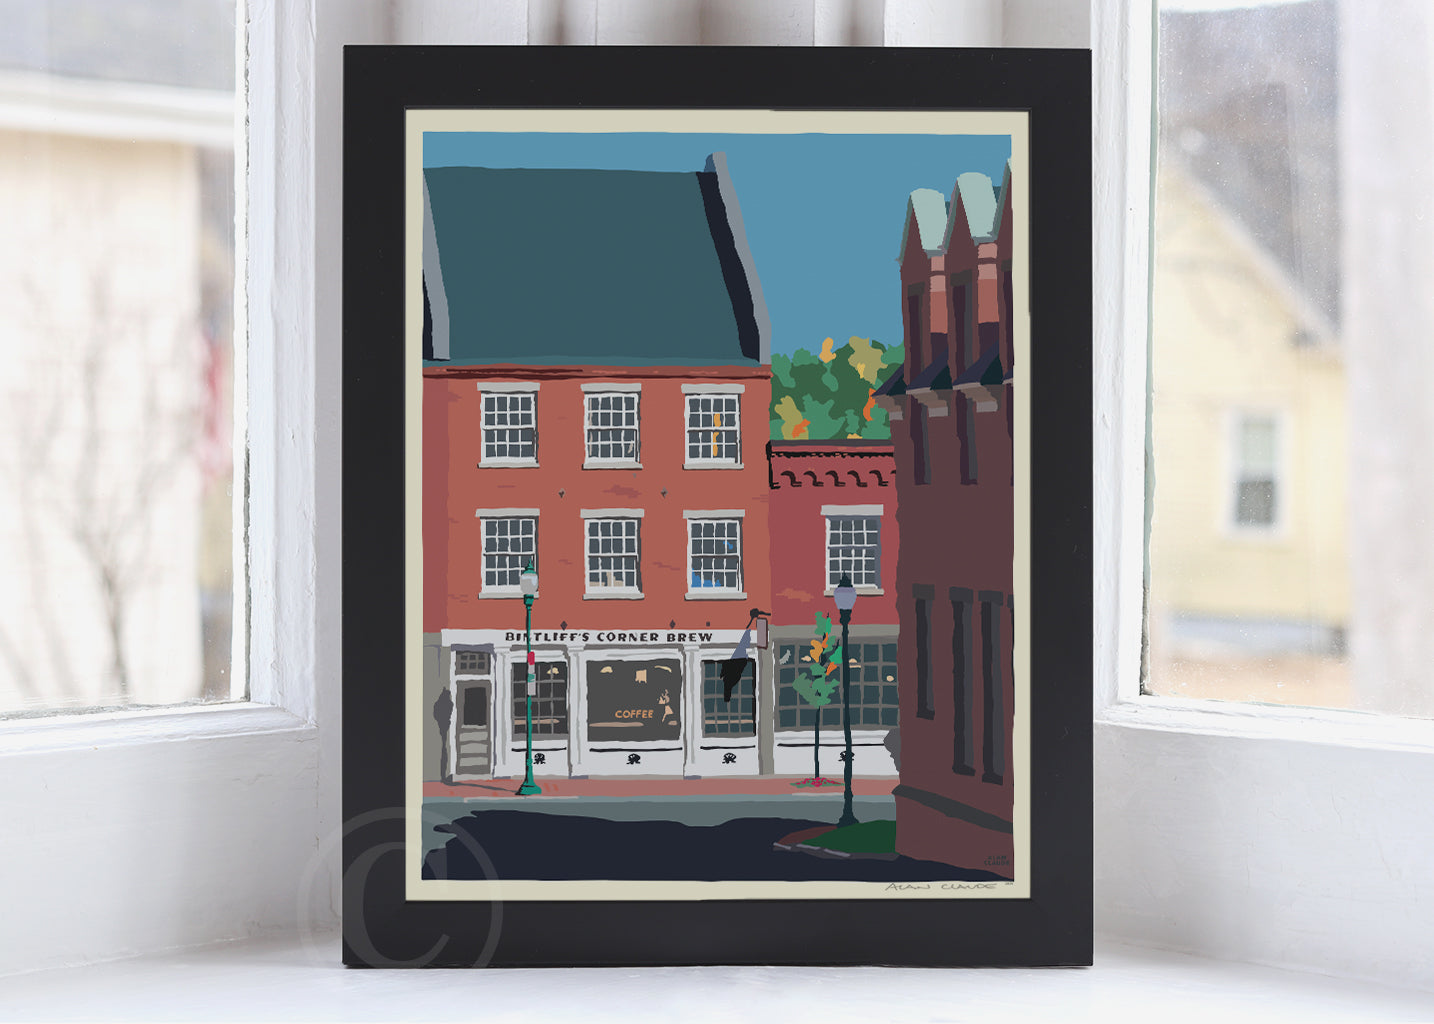 "Cafe in Gardiner Art Print 8"" x 10"" Framed Wall Poster By Alan Claude"